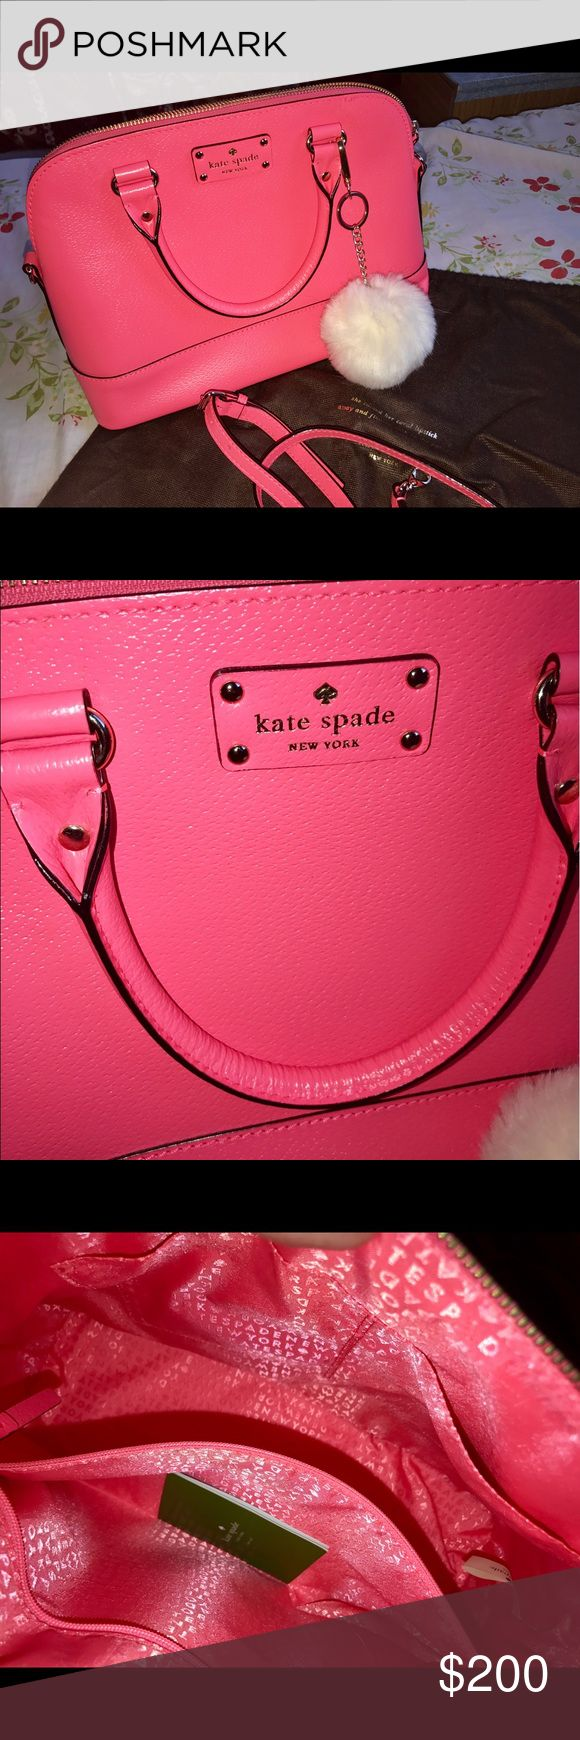 Pink Kate spade purse Brand new never used no tags do dirt or stain dust bag include and removable strap kate spade Bags Shoulder Bags